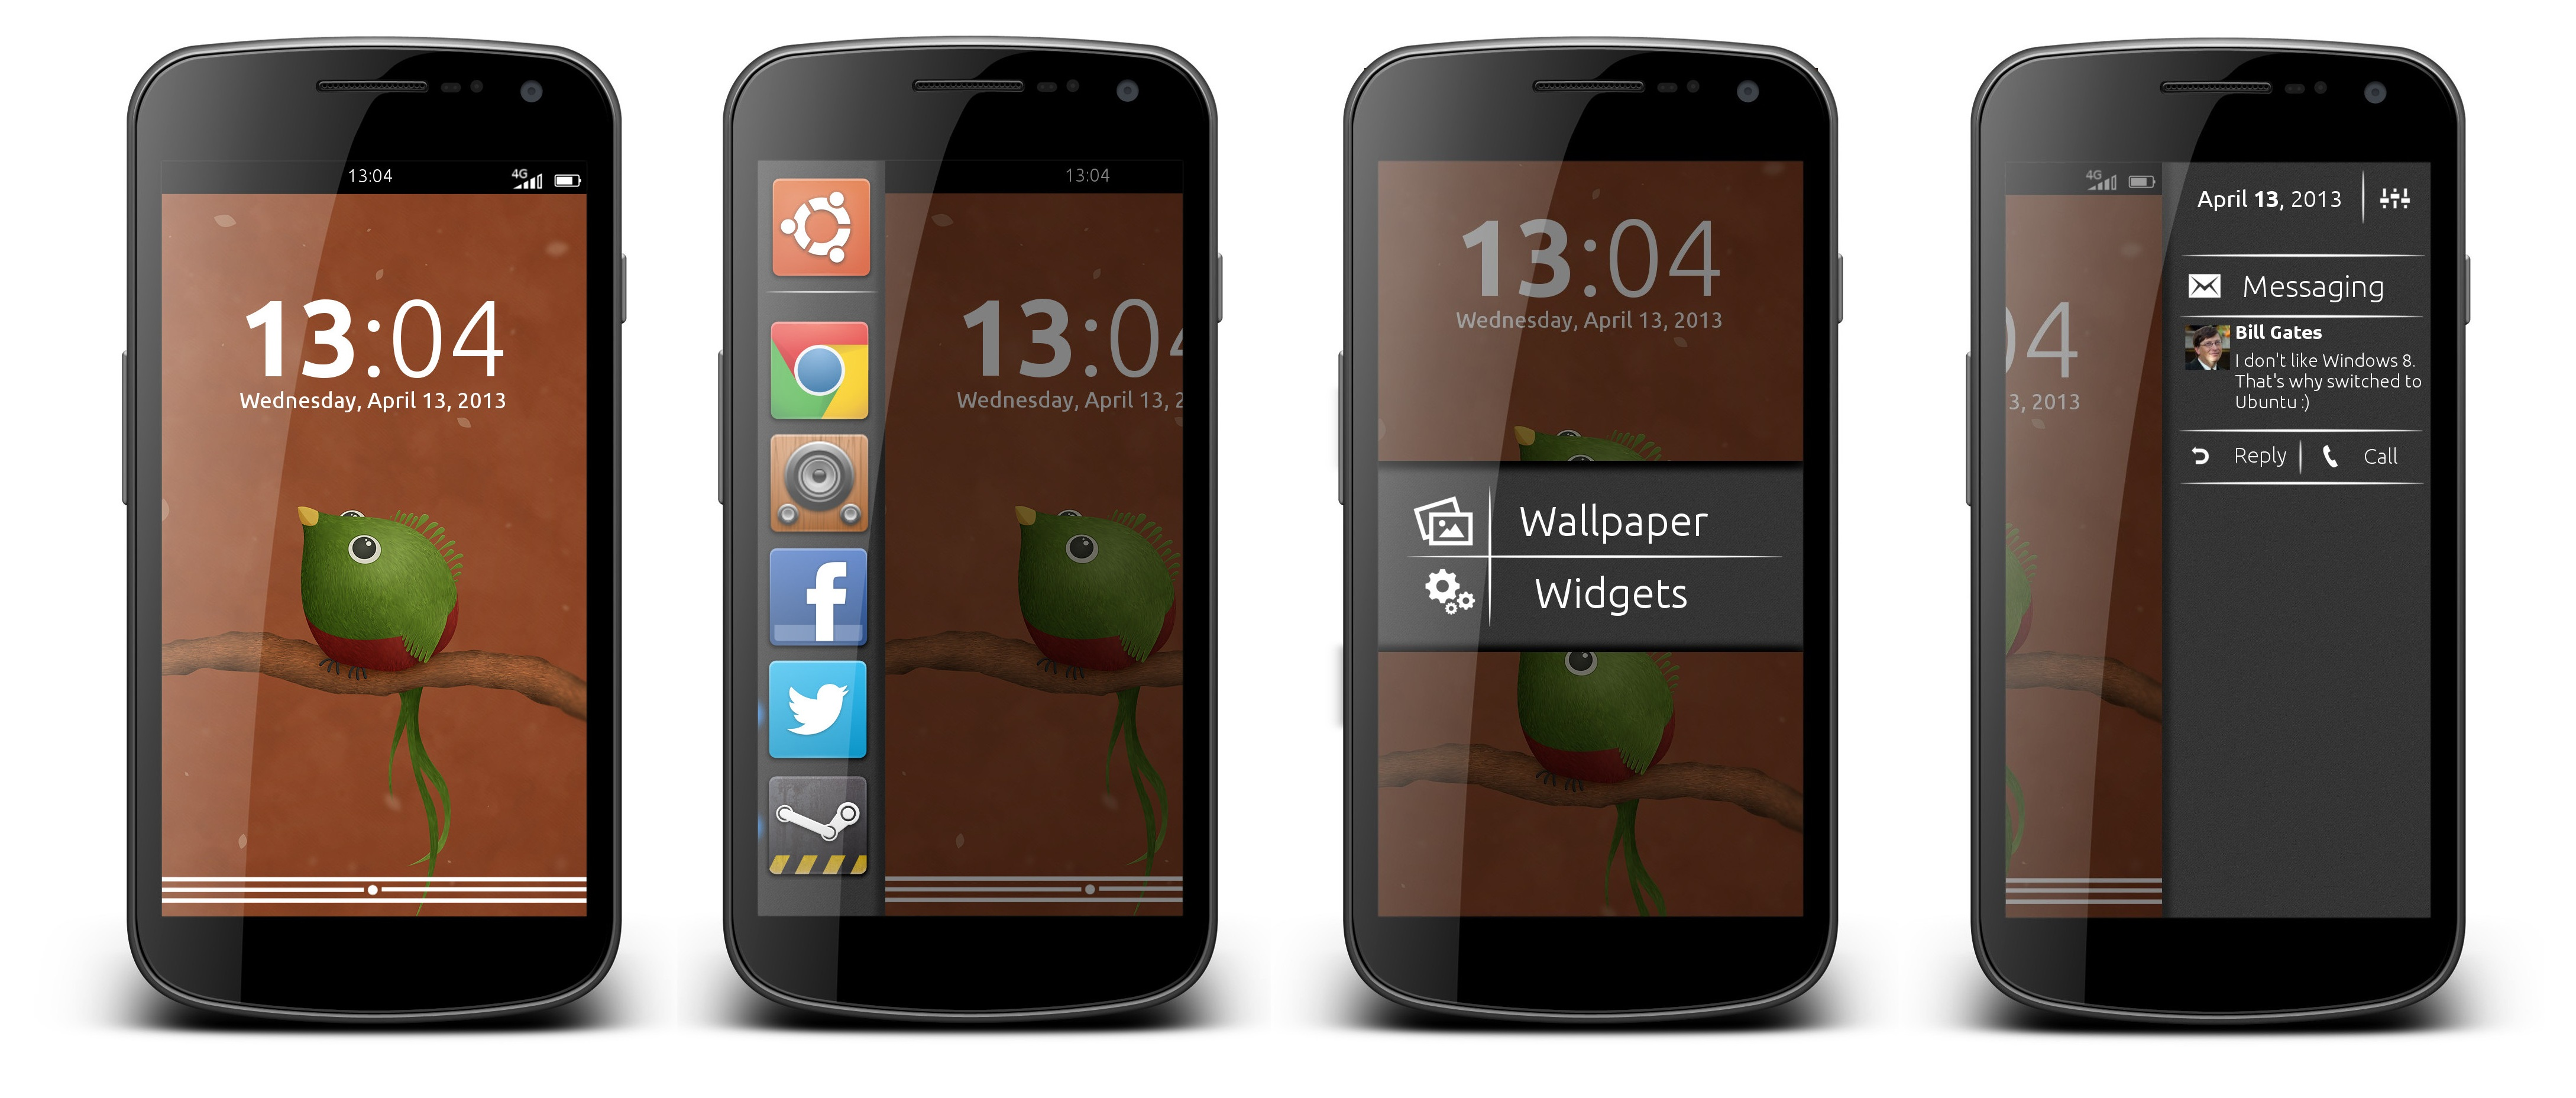 Come installare Ubuntu Phone OS su Galaxy Nexus da Windows?